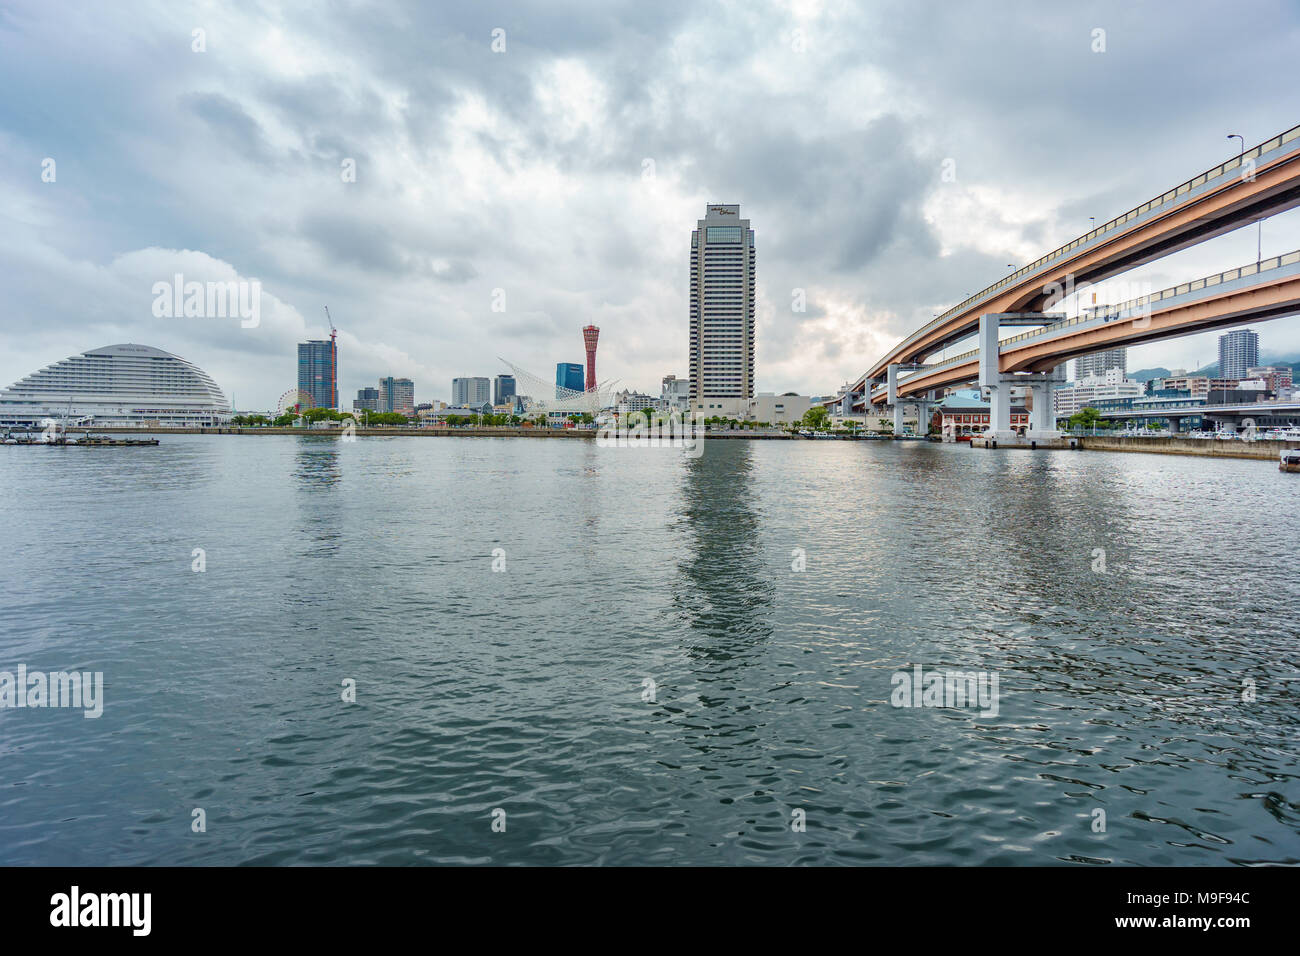 KOBE, JAPAN - June 3, 2015: Kobe tower and bridge at Port of Kobe in Kobe, Japan. - Stock Image